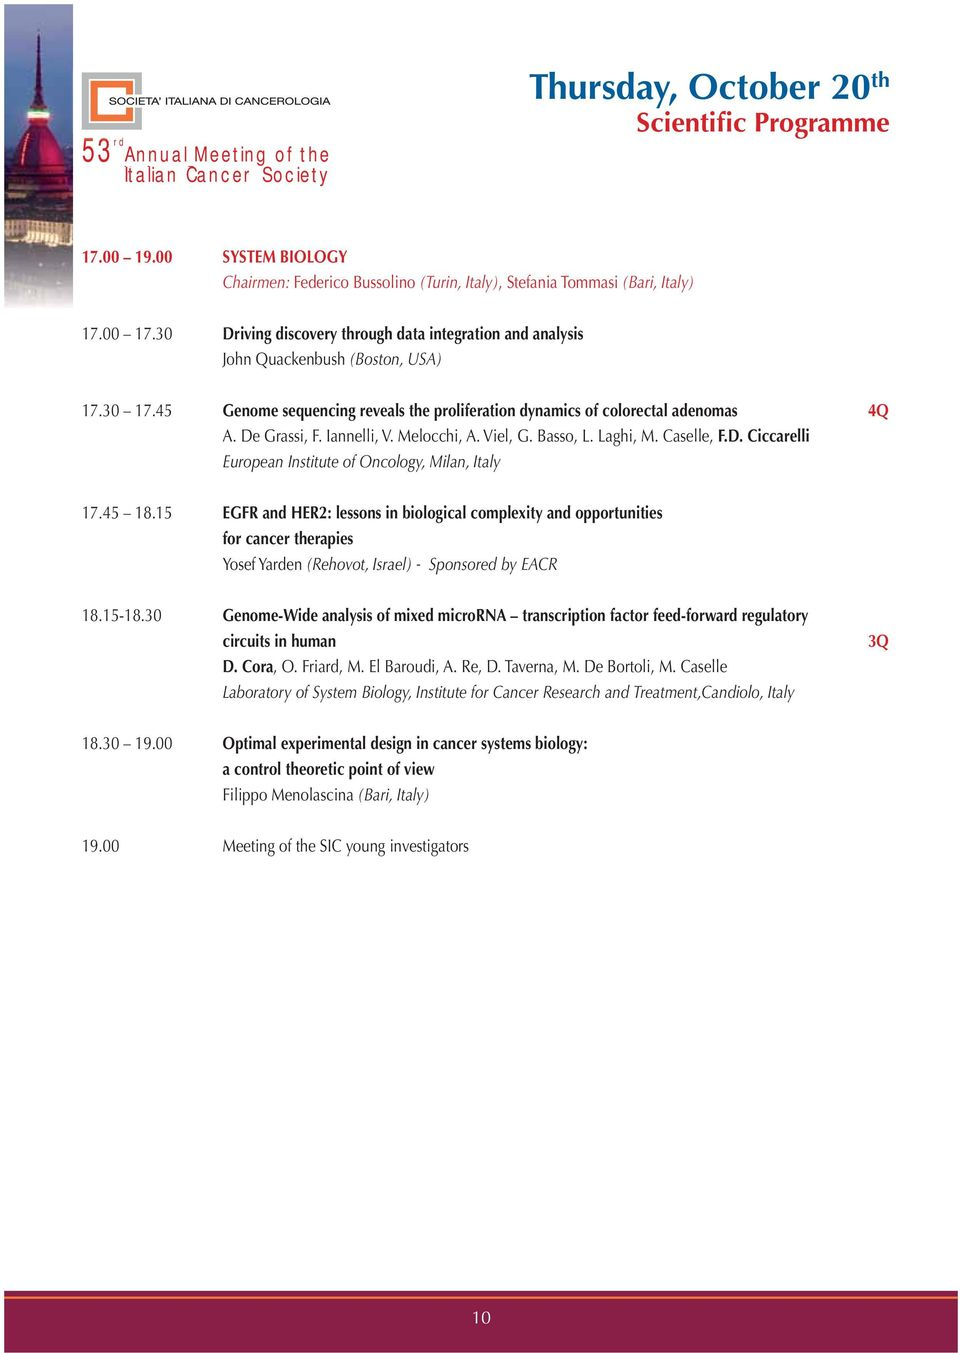 Iannelli, V. Melocchi, A. Viel, G. Basso, L. Laghi, M. Caselle, F.D. Ciccarelli European Institute of Oncology, Milan, Italy 17.45 18.